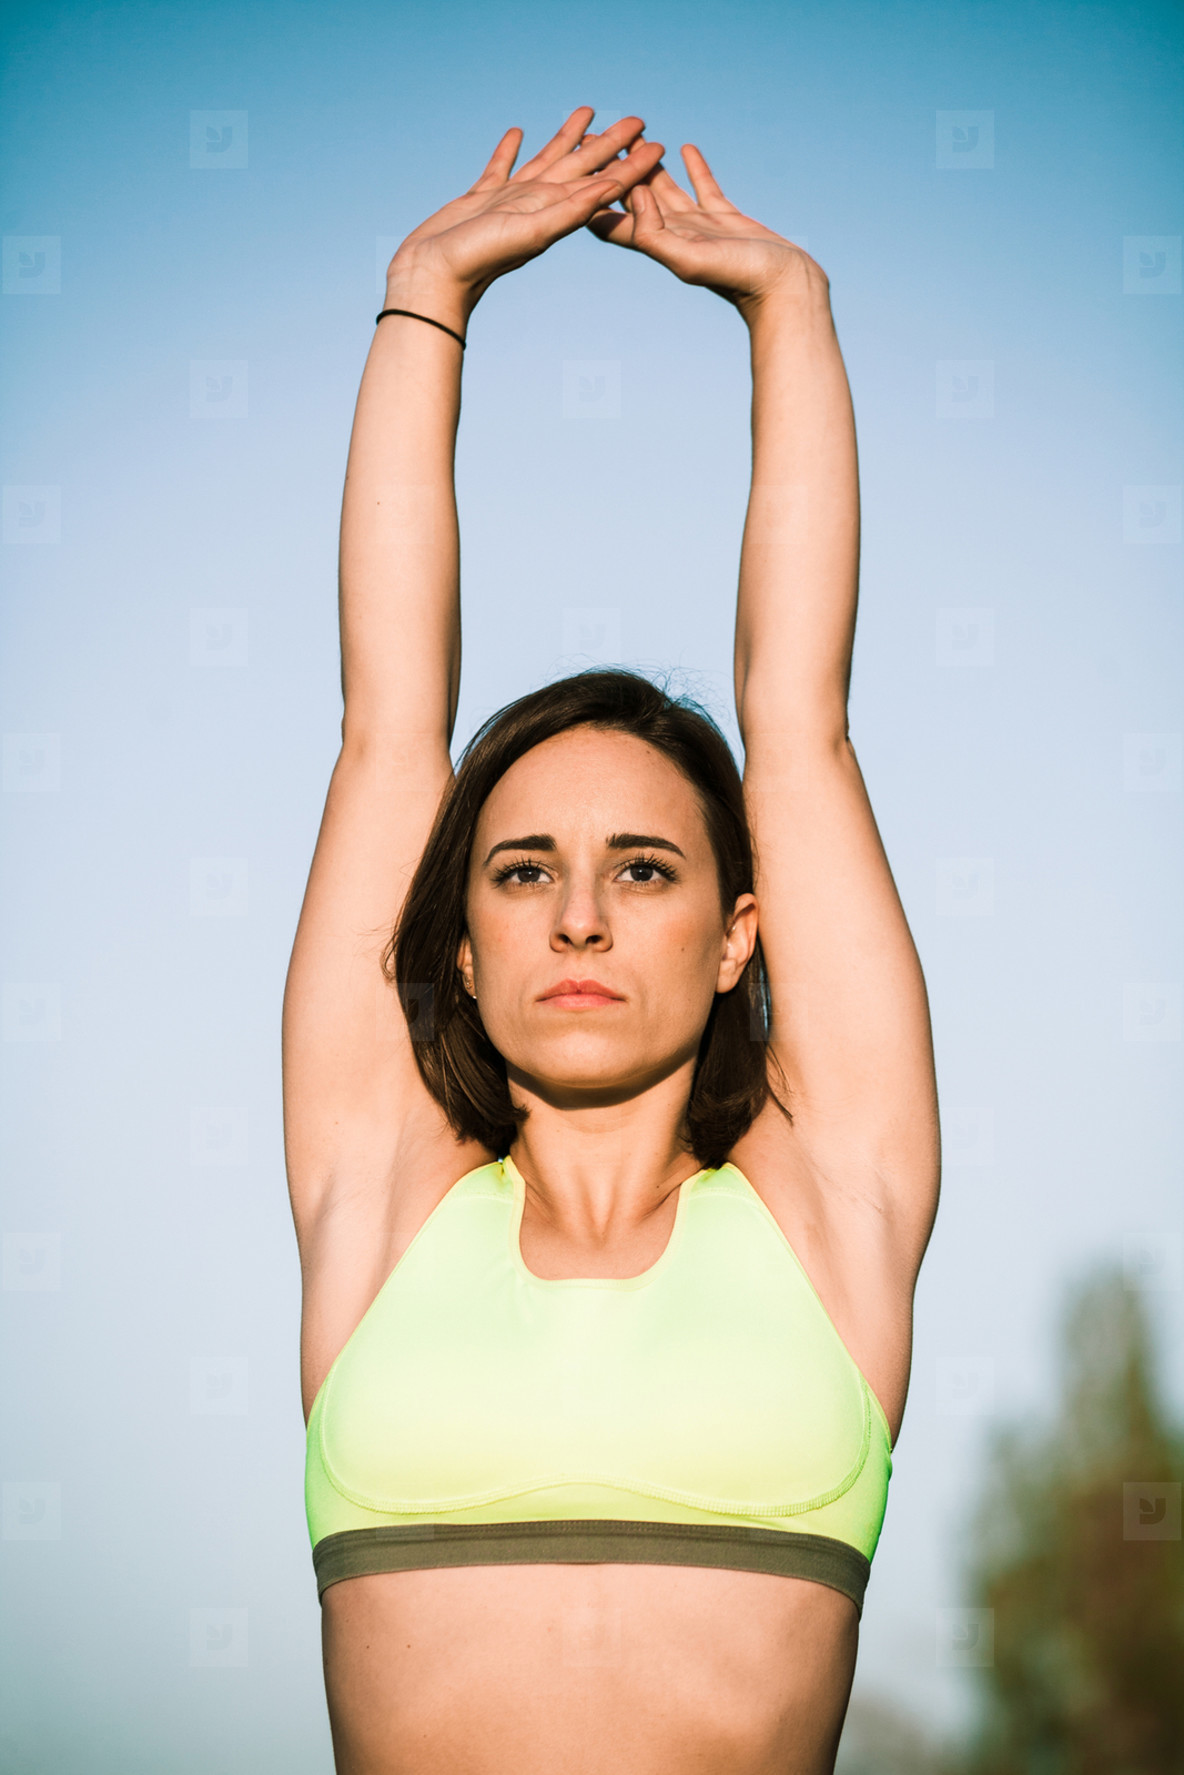 Brunette woman in sportswear doing stretching exercise with arms up while working out